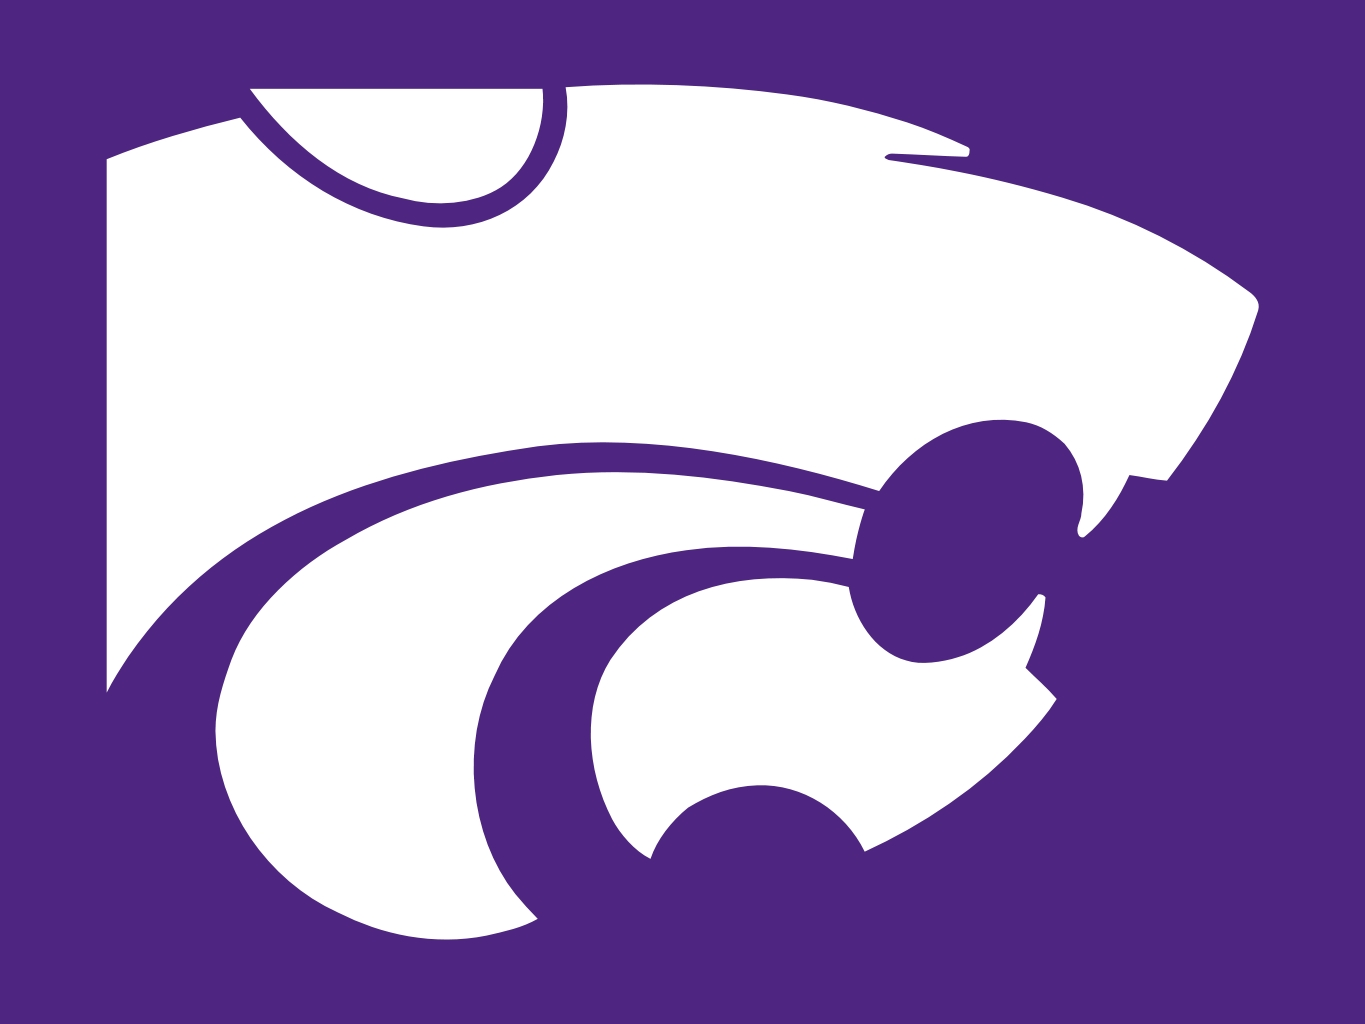 Kansas state logo clipart png vector download Kansas state university logo clipart - ClipartFest vector download